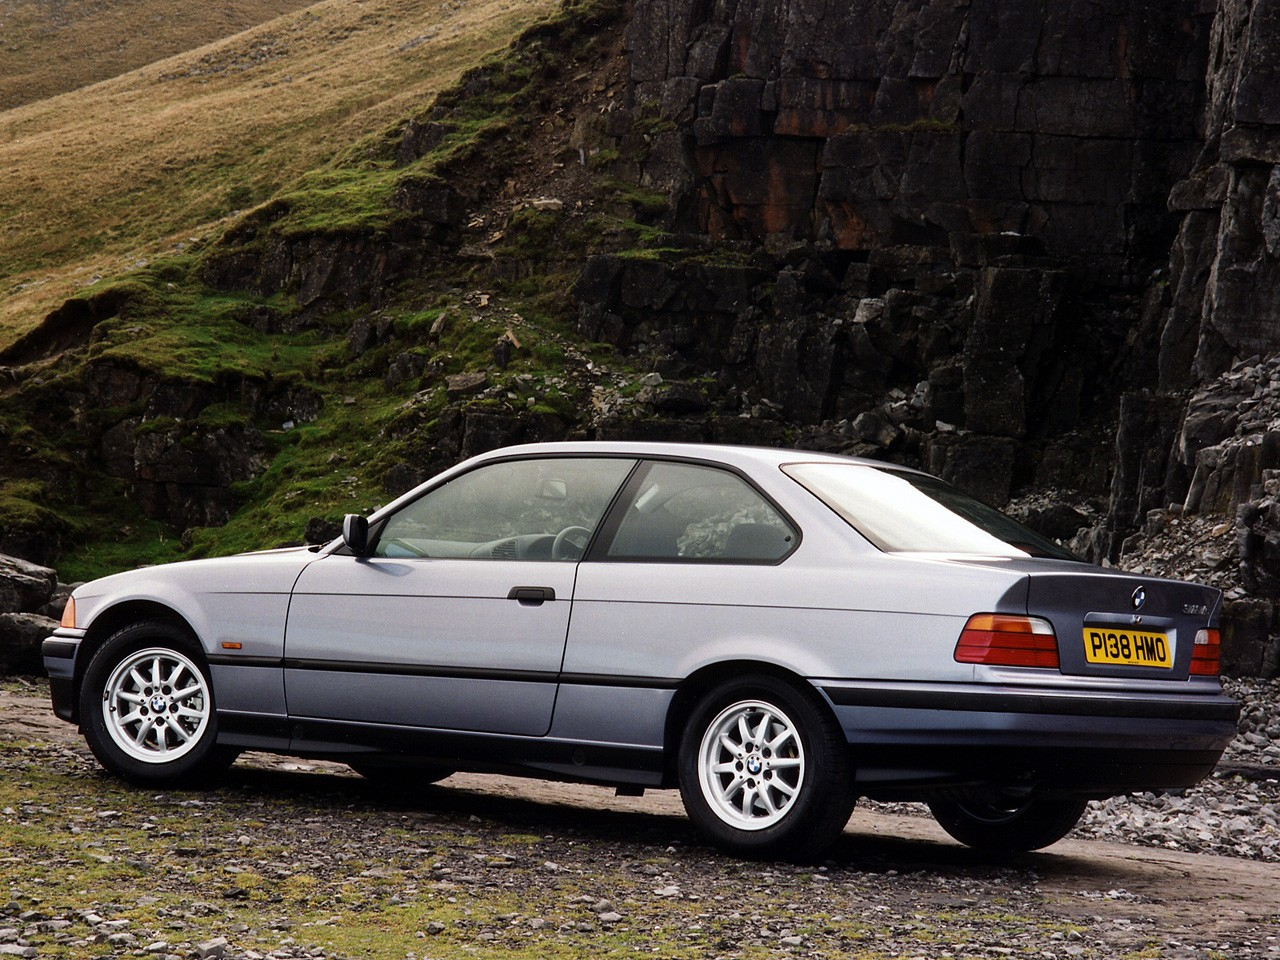 BMW 318is Coupe UK spec E36 Wallpapers Car wallpapers HD 1280x960